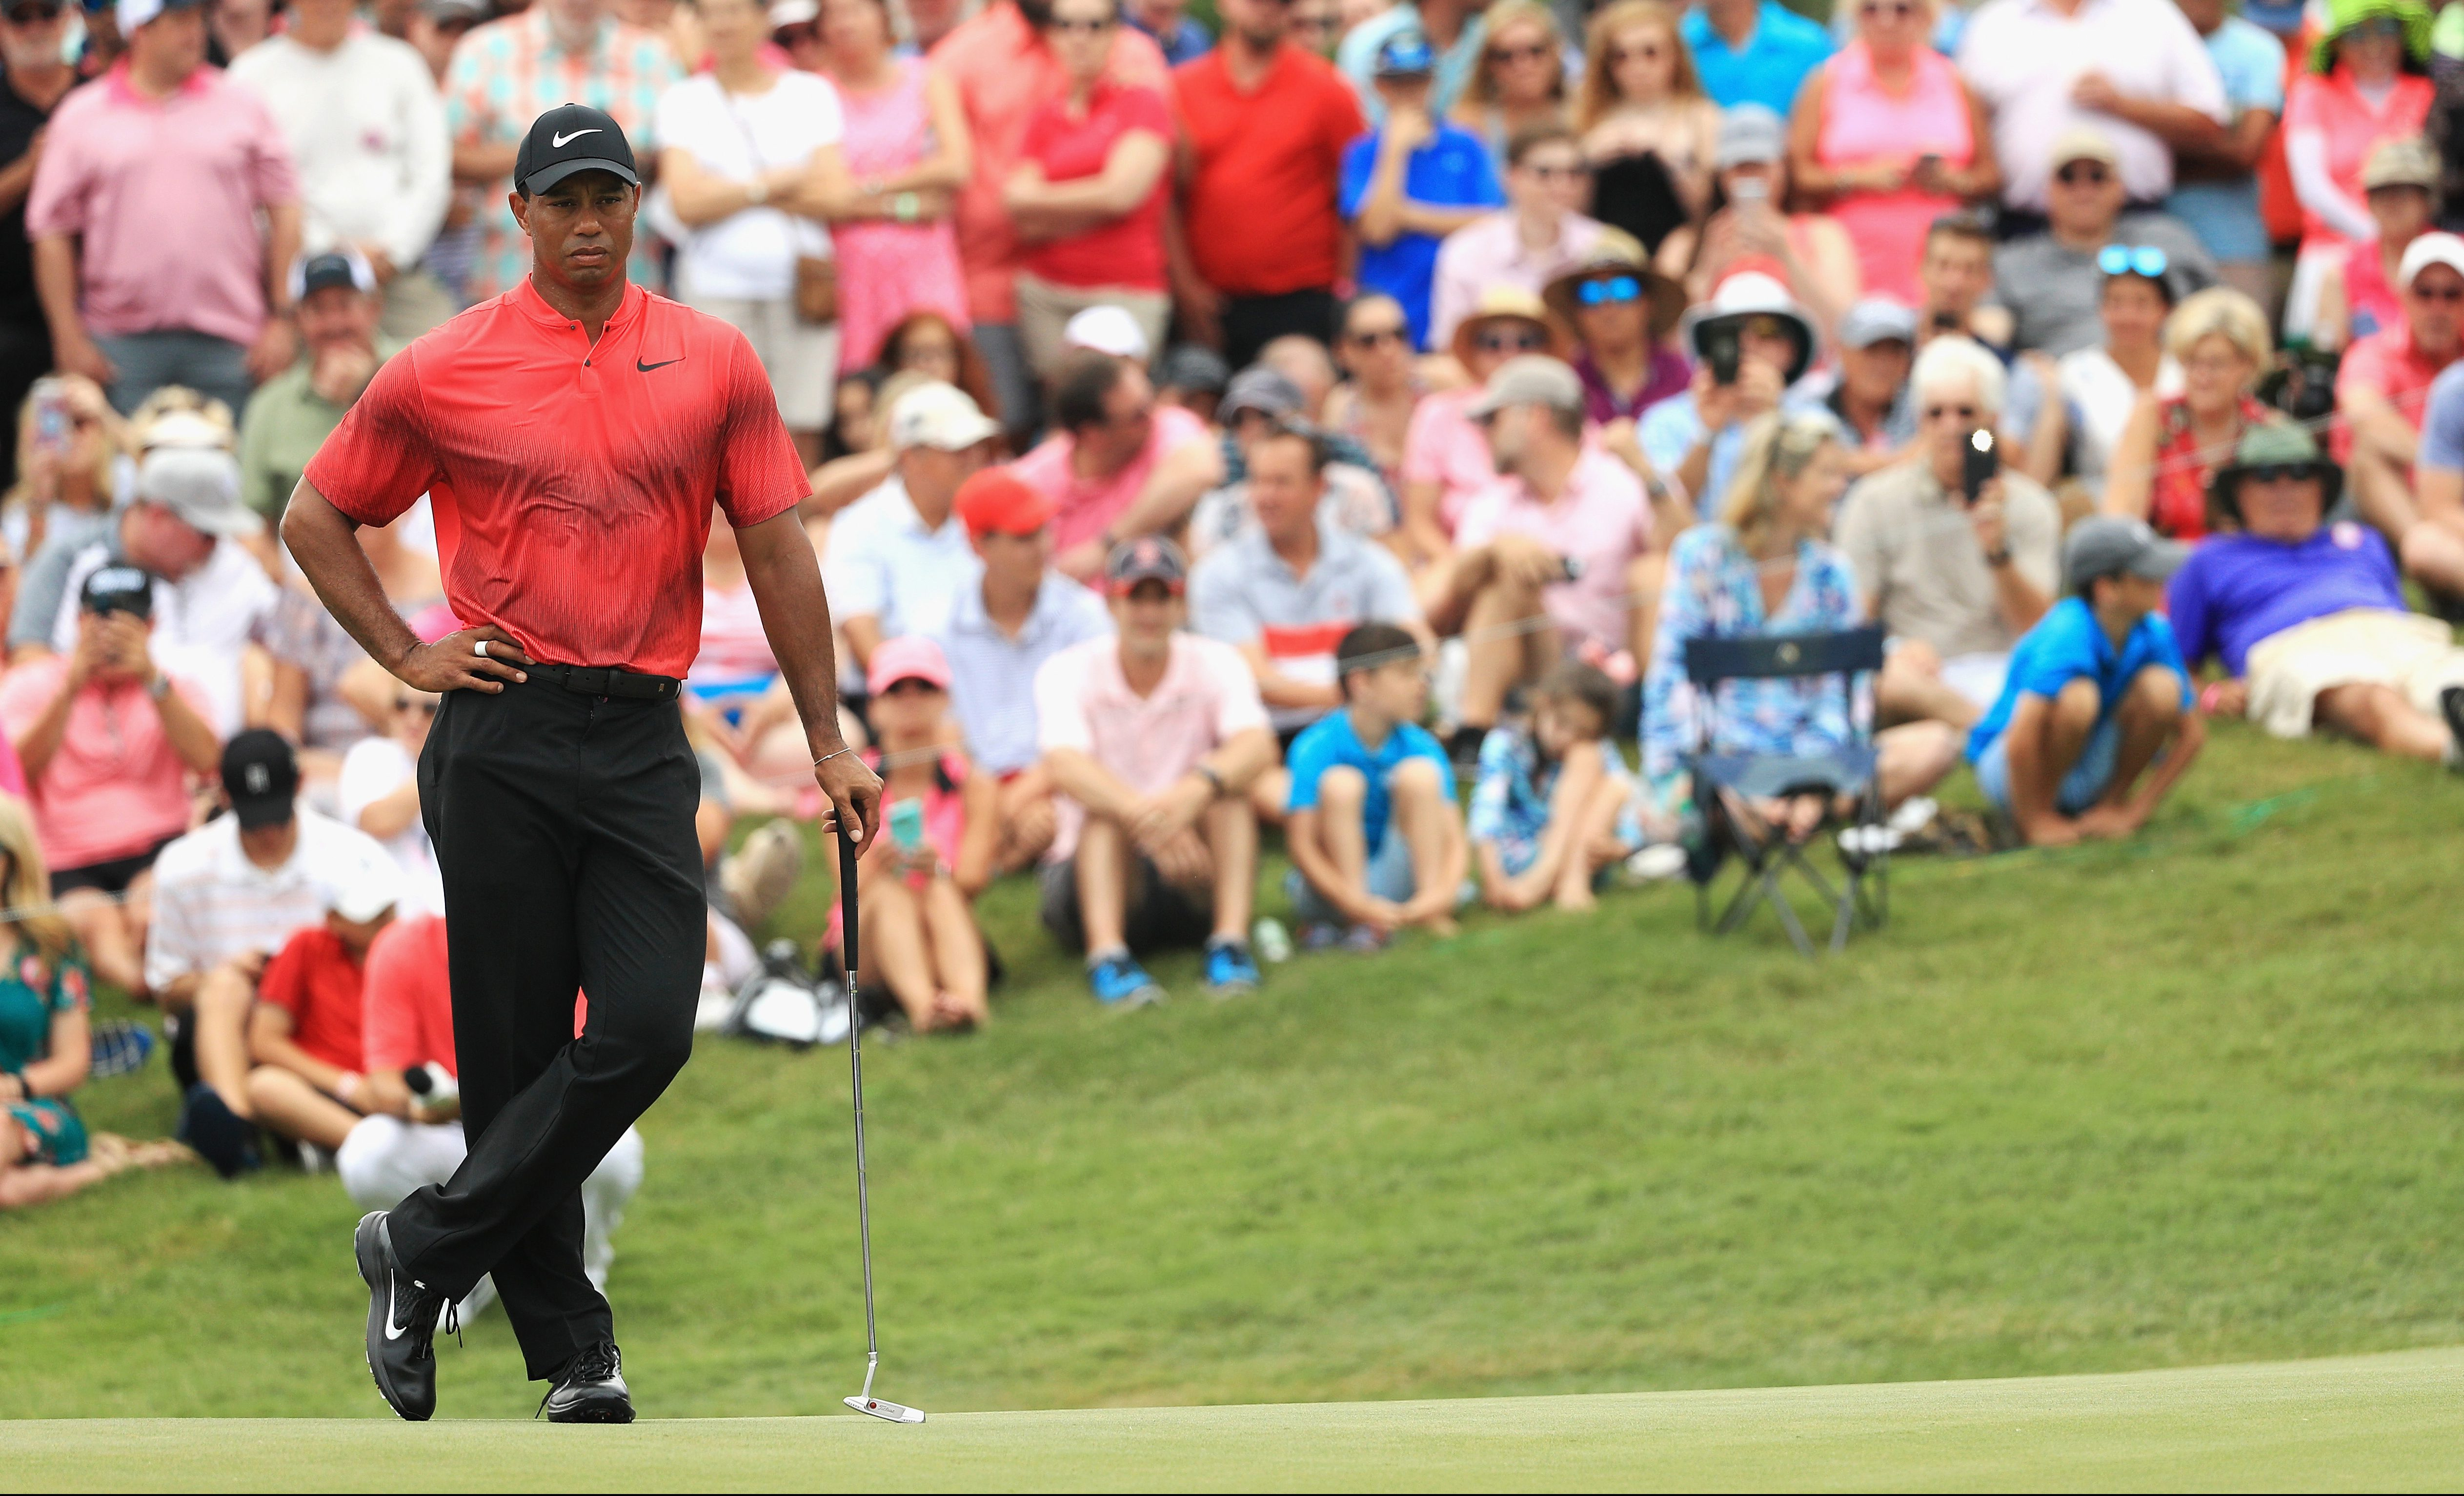 PONTE VEDRA BEACH, FL - MAY 13: Tiger Woods of the United States stands on the second green during the final round of THE PLAYERS Championship on the Stadium Course at TPC Sawgrass on May 13, 2018 in Ponte Vedra Beach, Florida. (Photo by Mike Ehrmann/Getty Images)